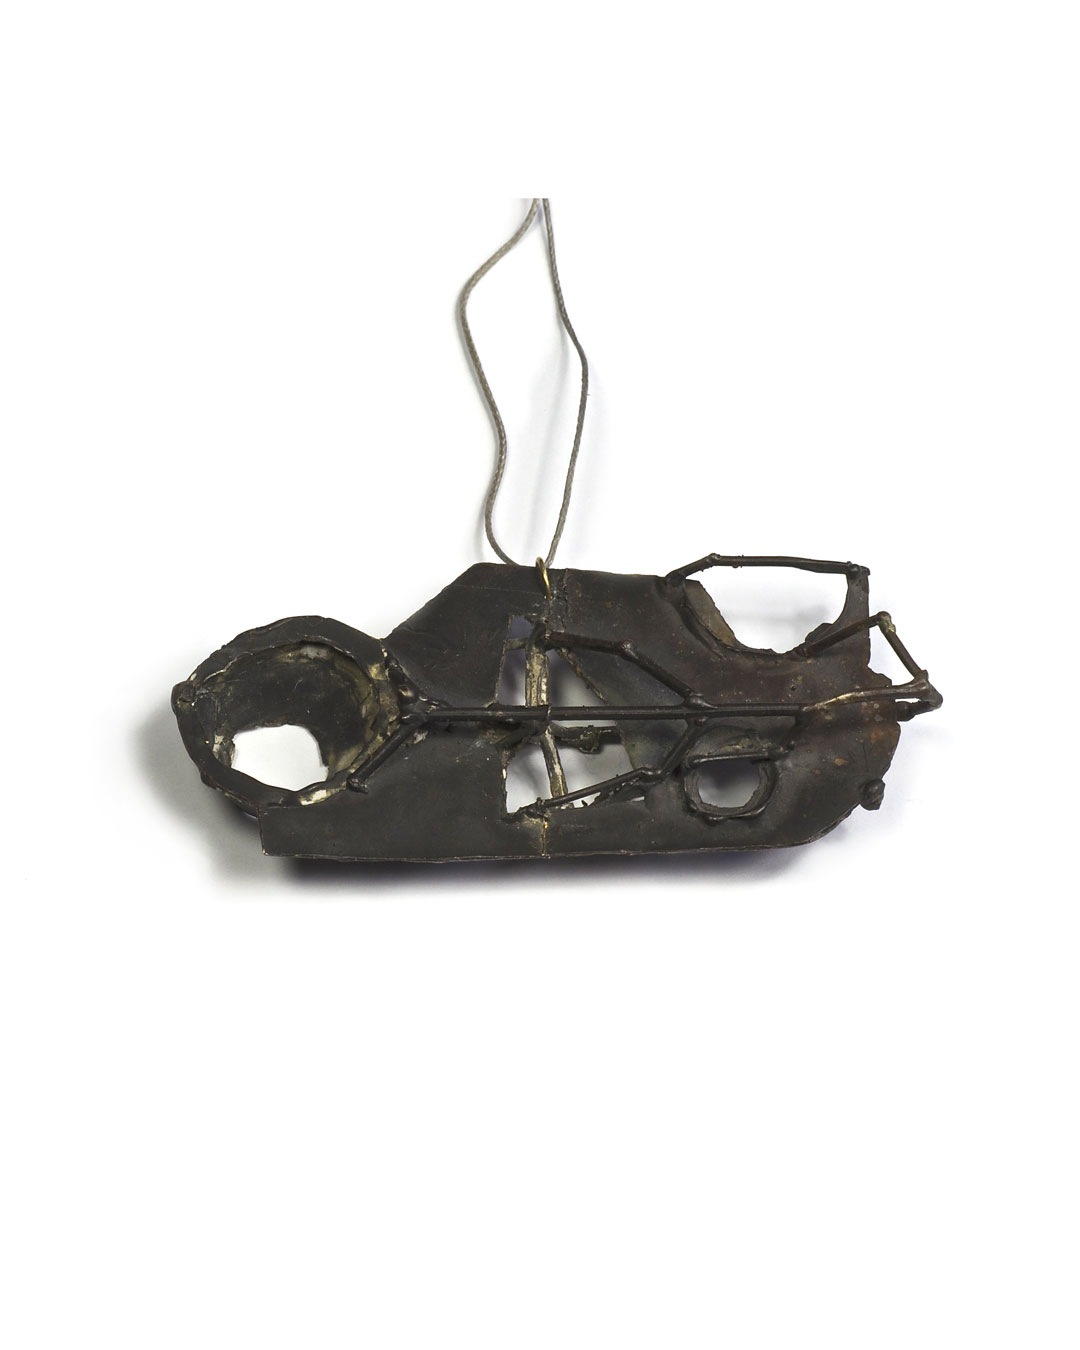 Andrea Wippermann, Haus (House), 2002, pendant; silver, gold, 37 x 82 x 16 mm, €850